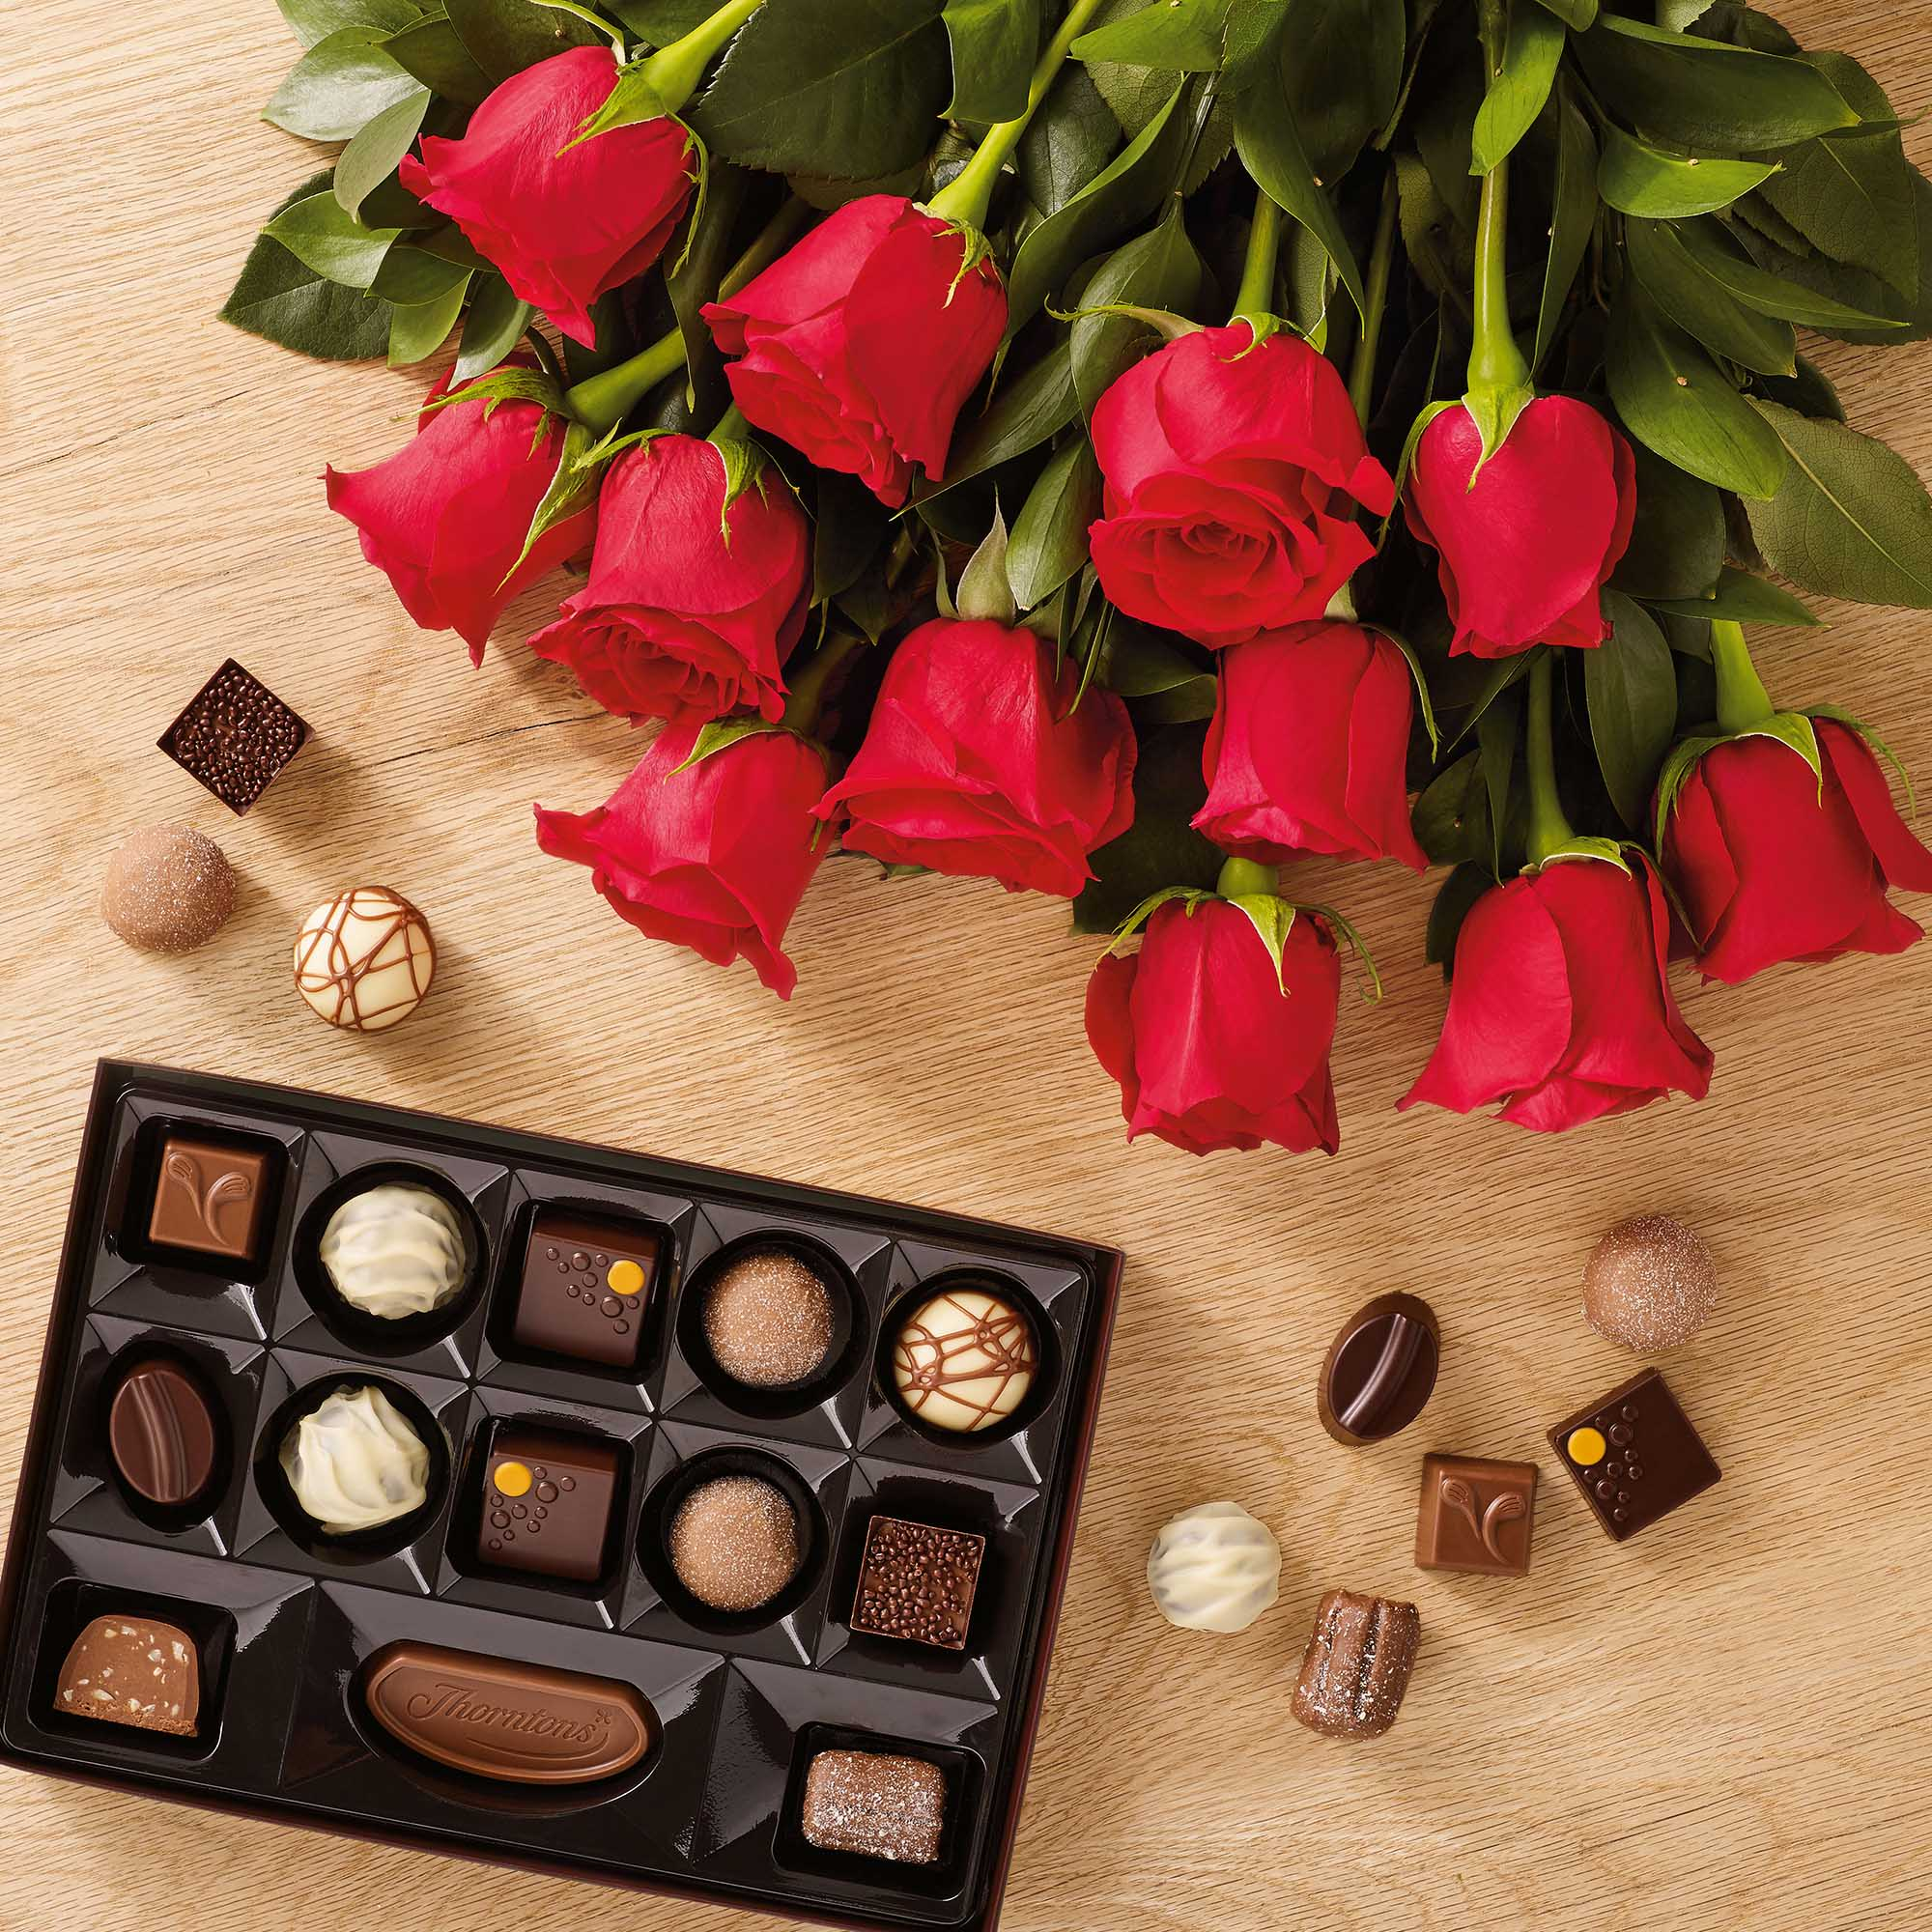 Flower Delivery Order Flowers And Chocolates By Post Uk Thorntons